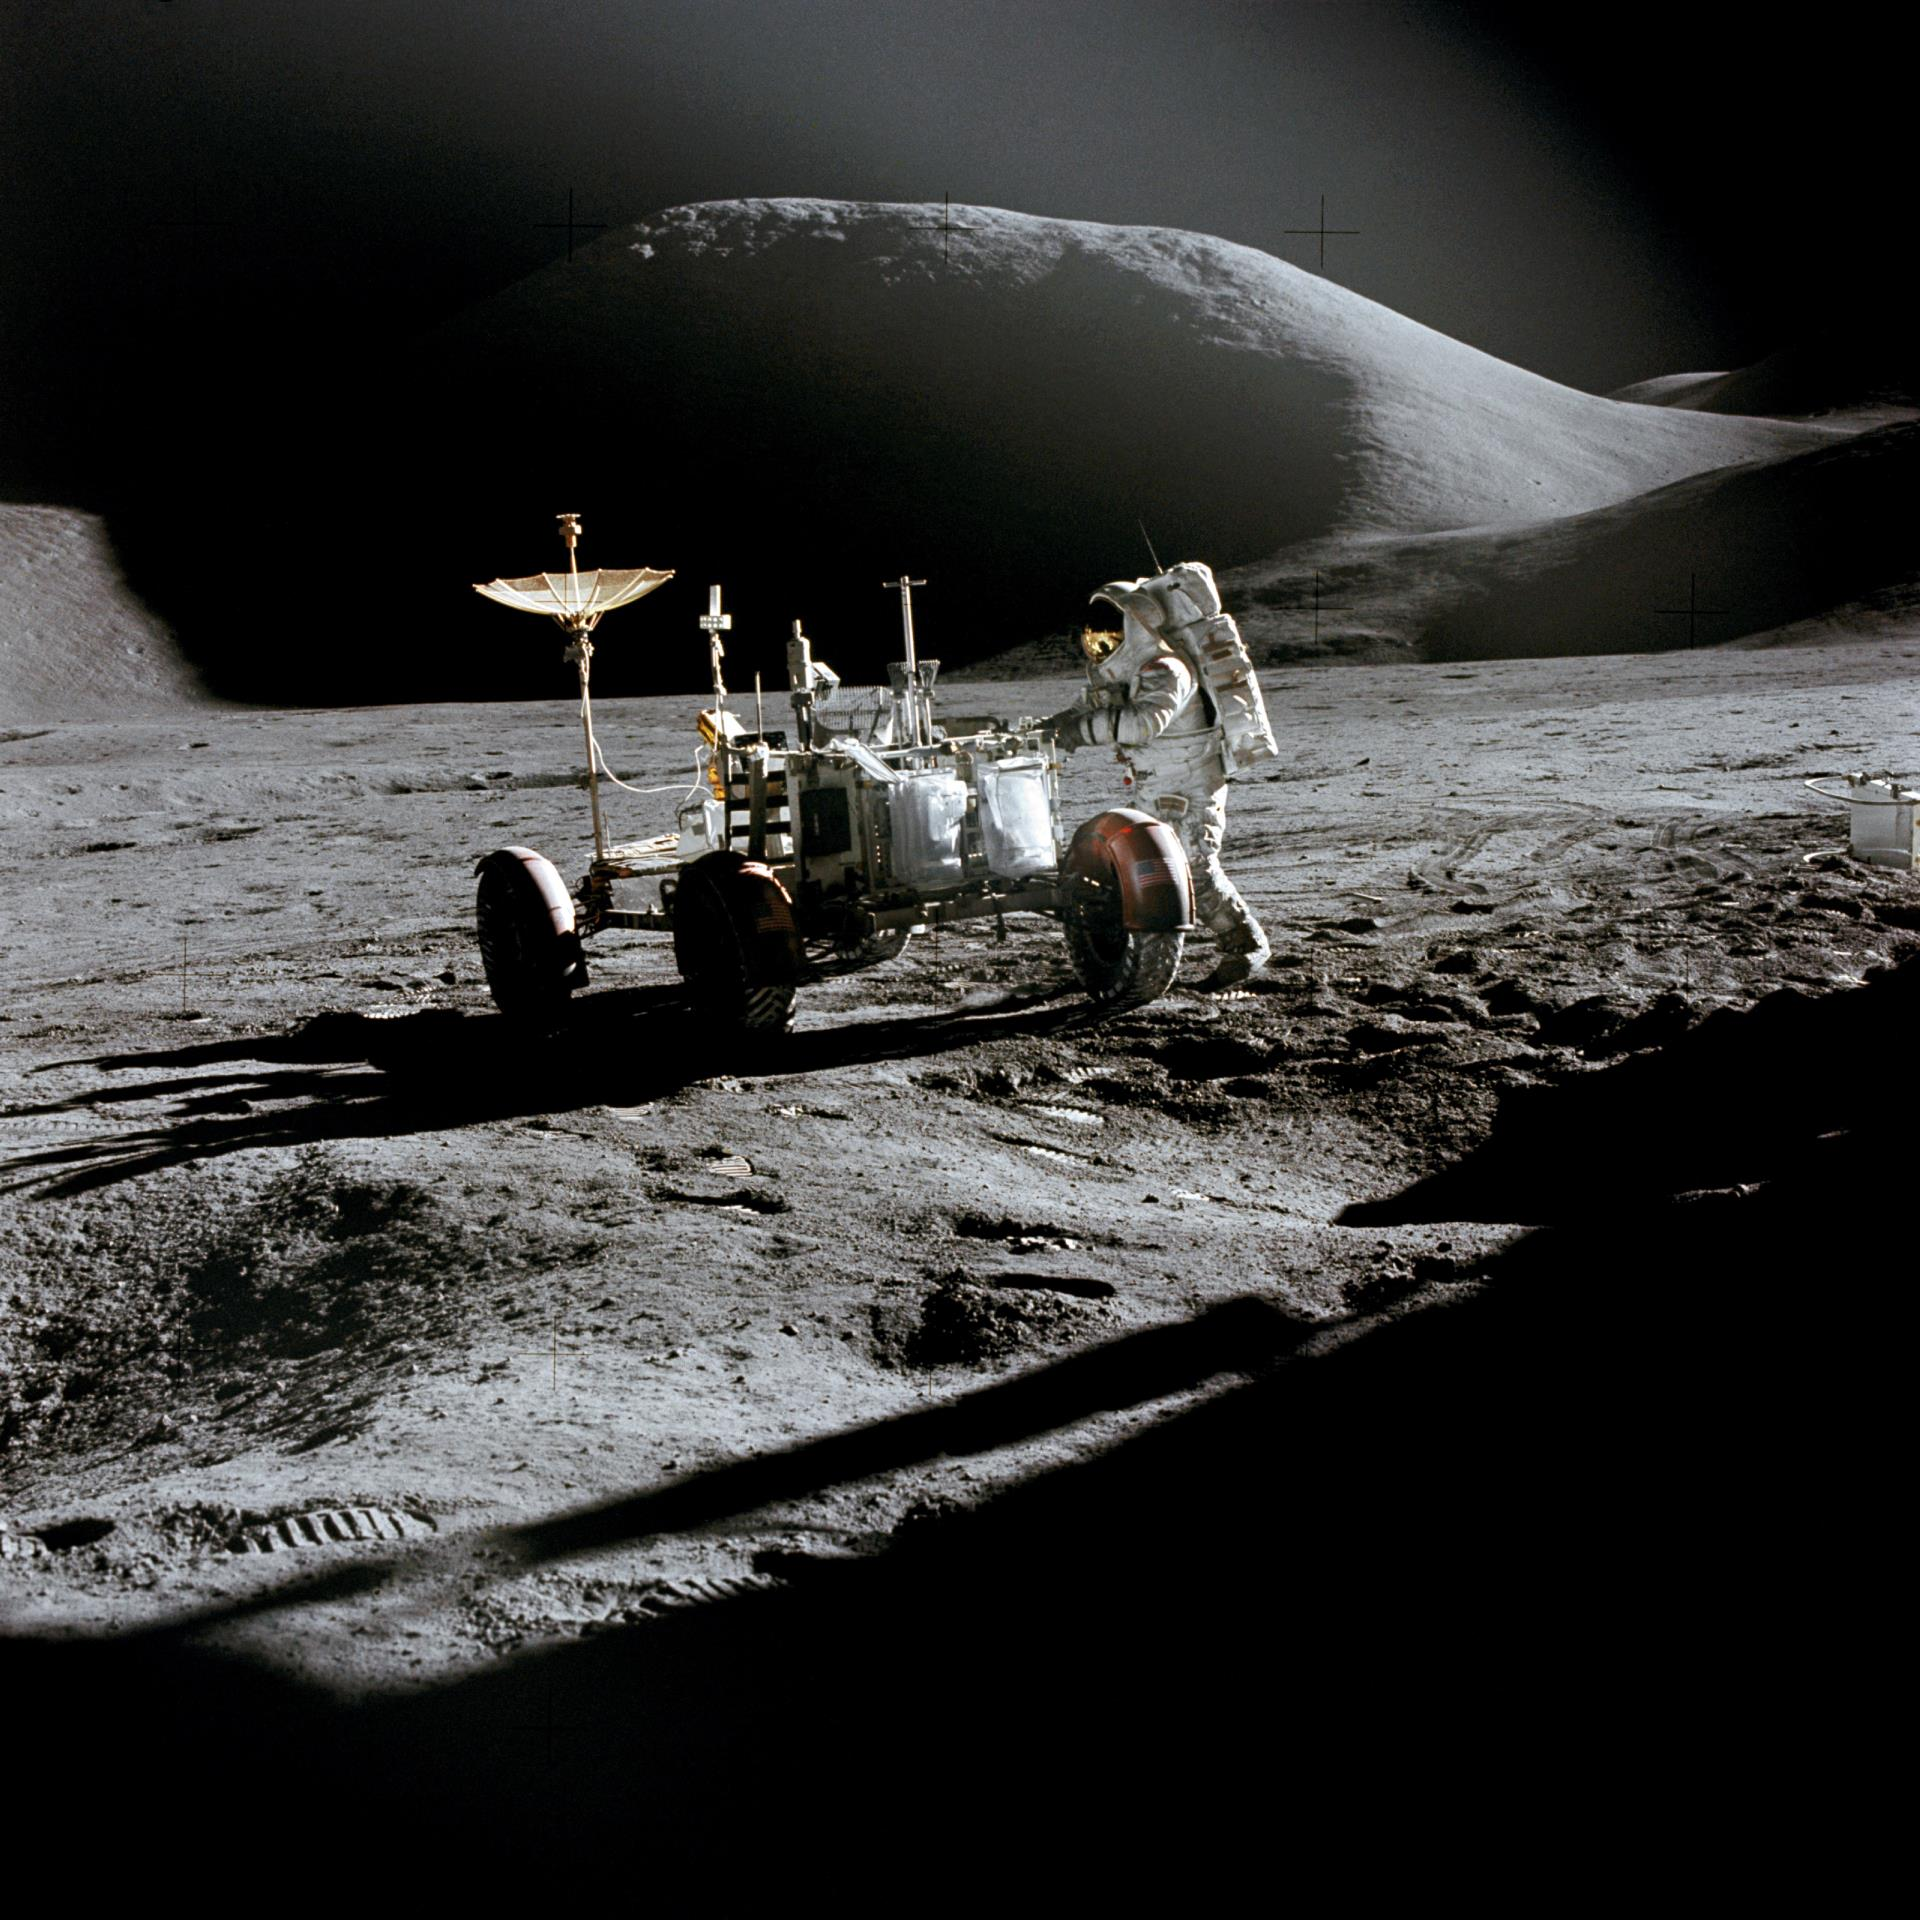 Astronaut working beside rover on moon